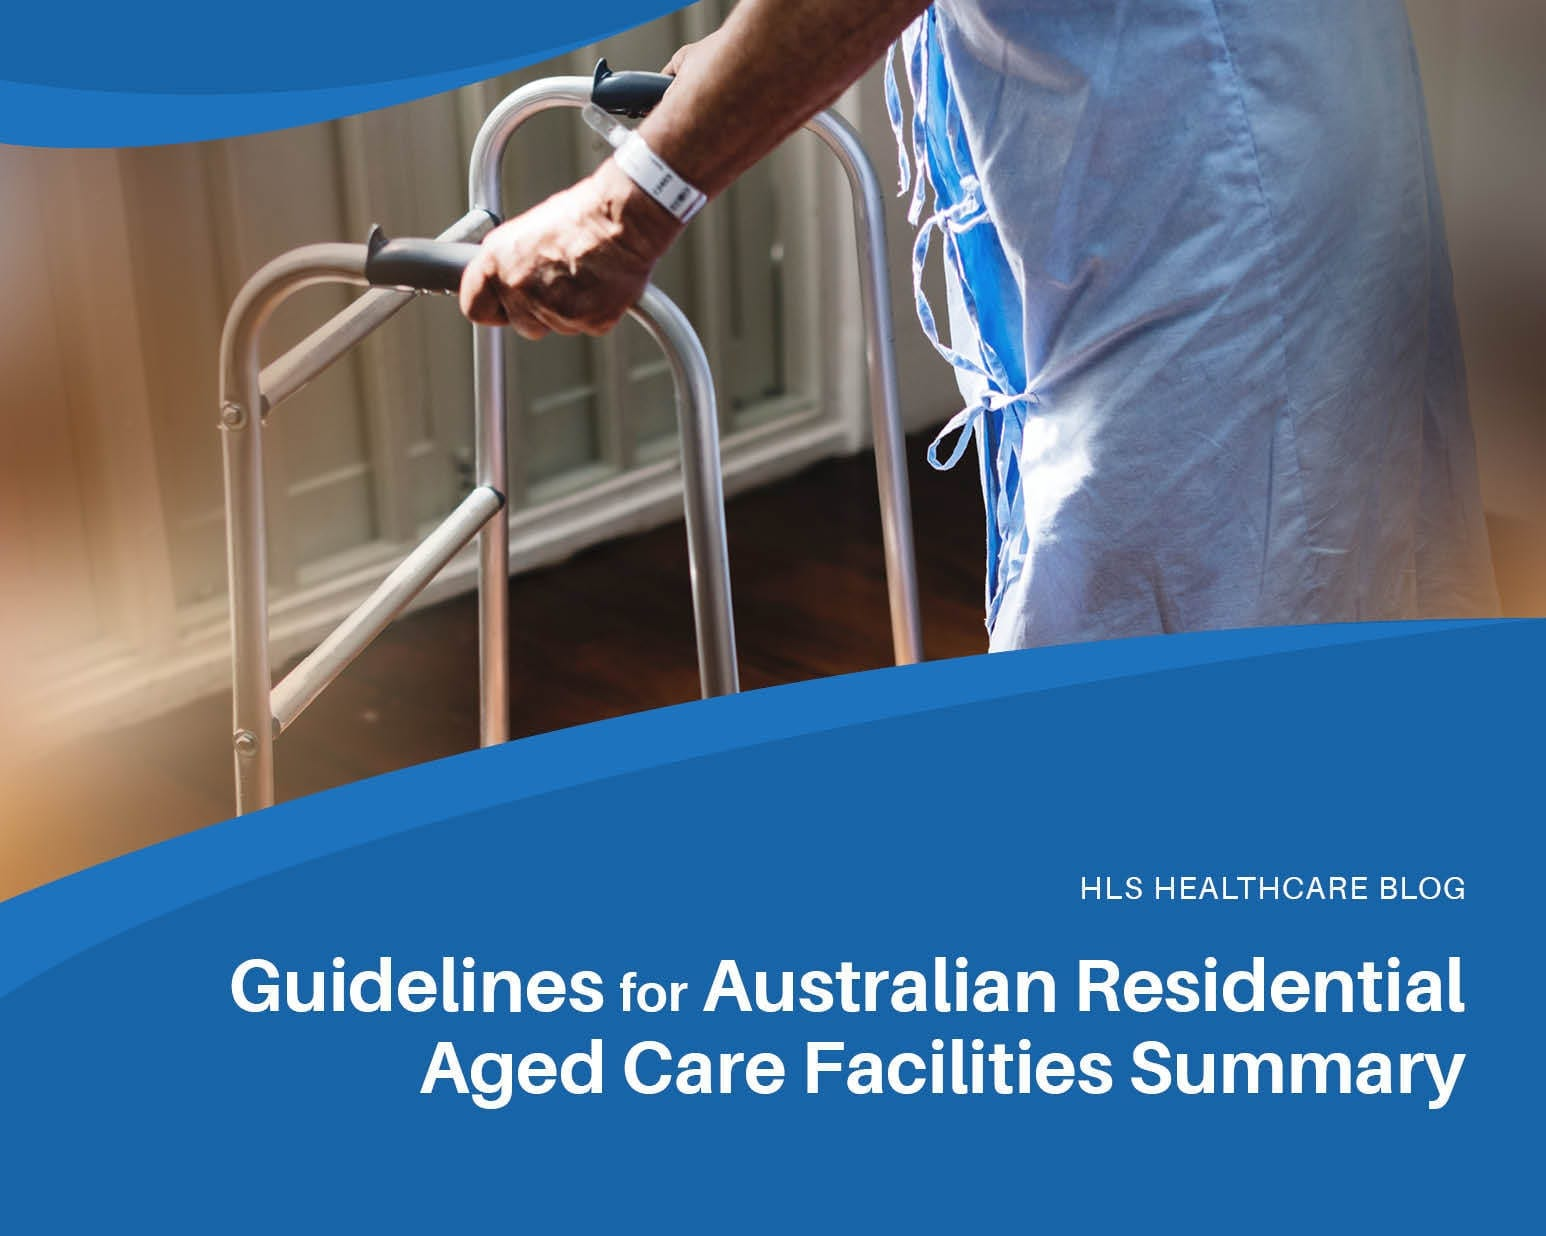 Guidelines for Australian Residential Aged Care Facilities Summary